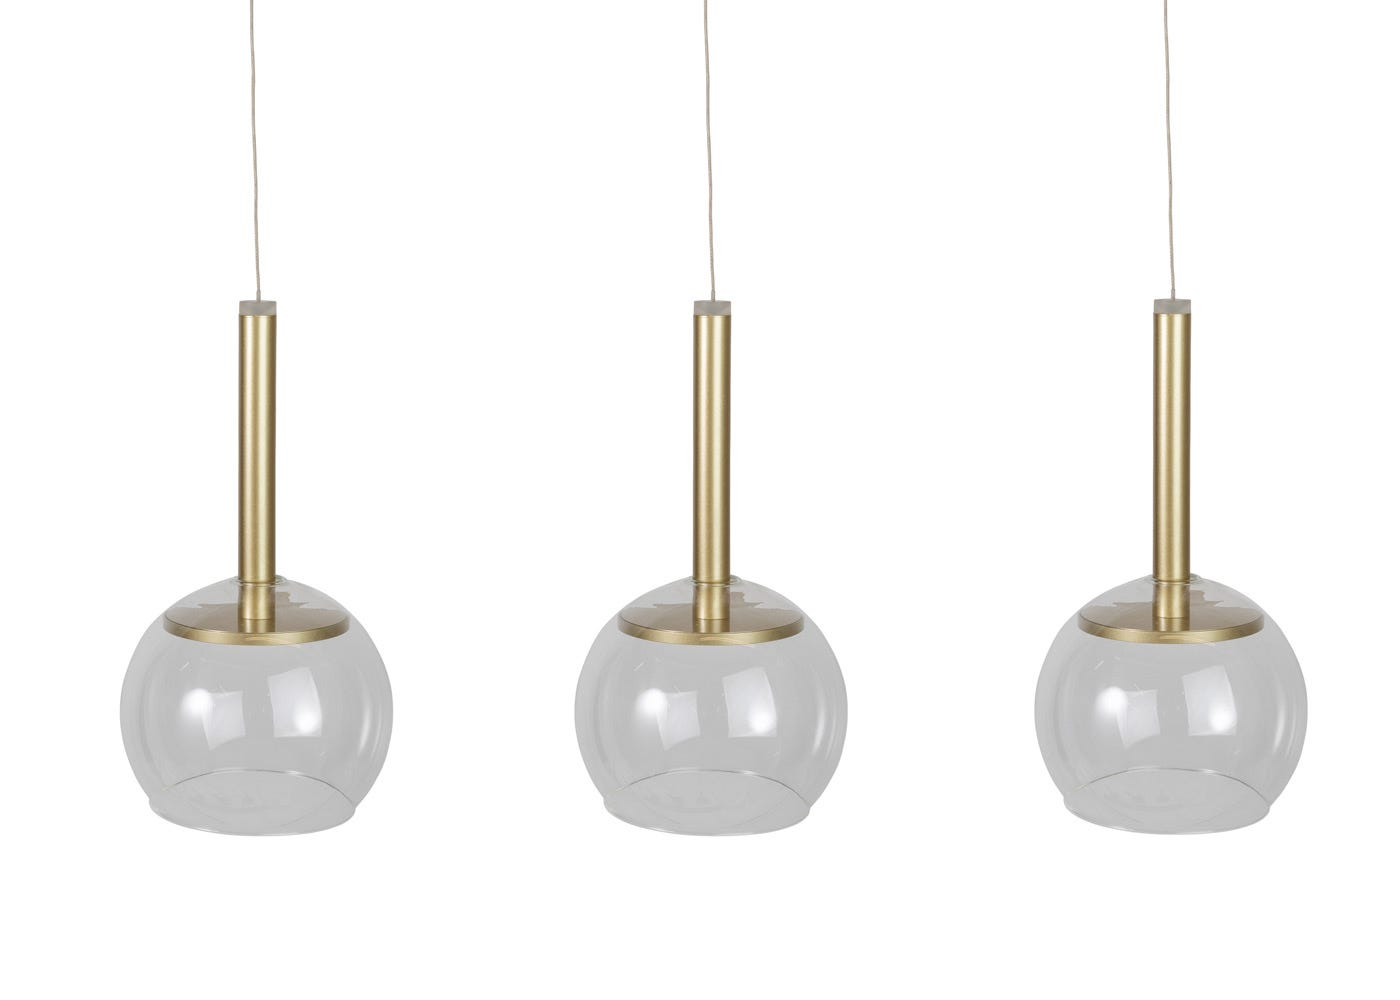 Disc 3 long LED pendant in gold with clear glass shades (sold separately).